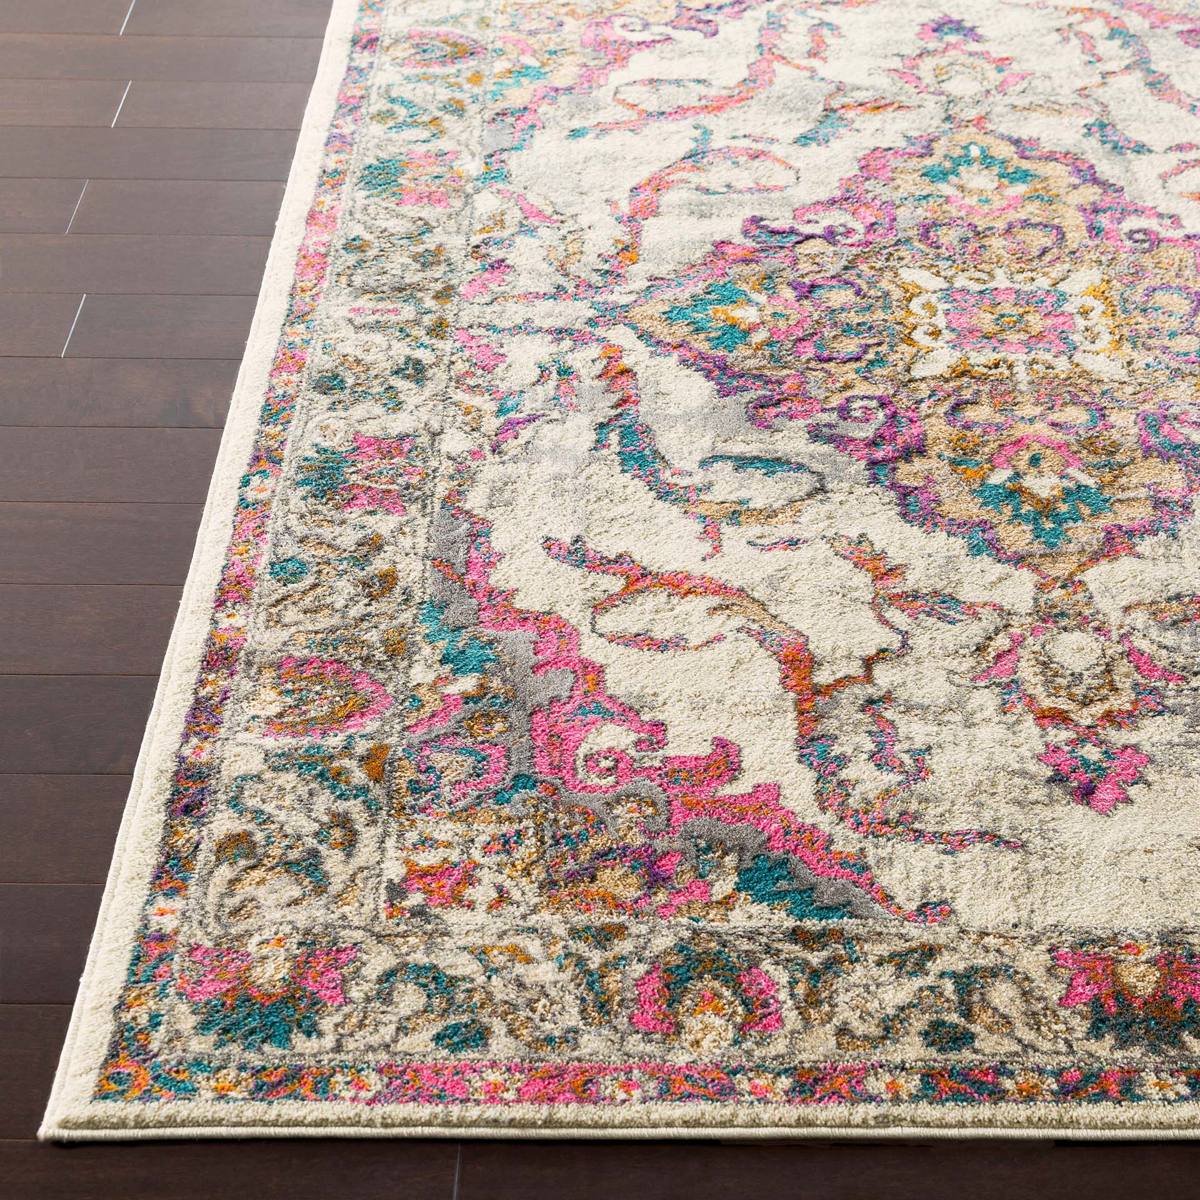 Classic Turkish area rug in ivory with pink, teal, gray and orange floral and ribbon pattern on wood floor